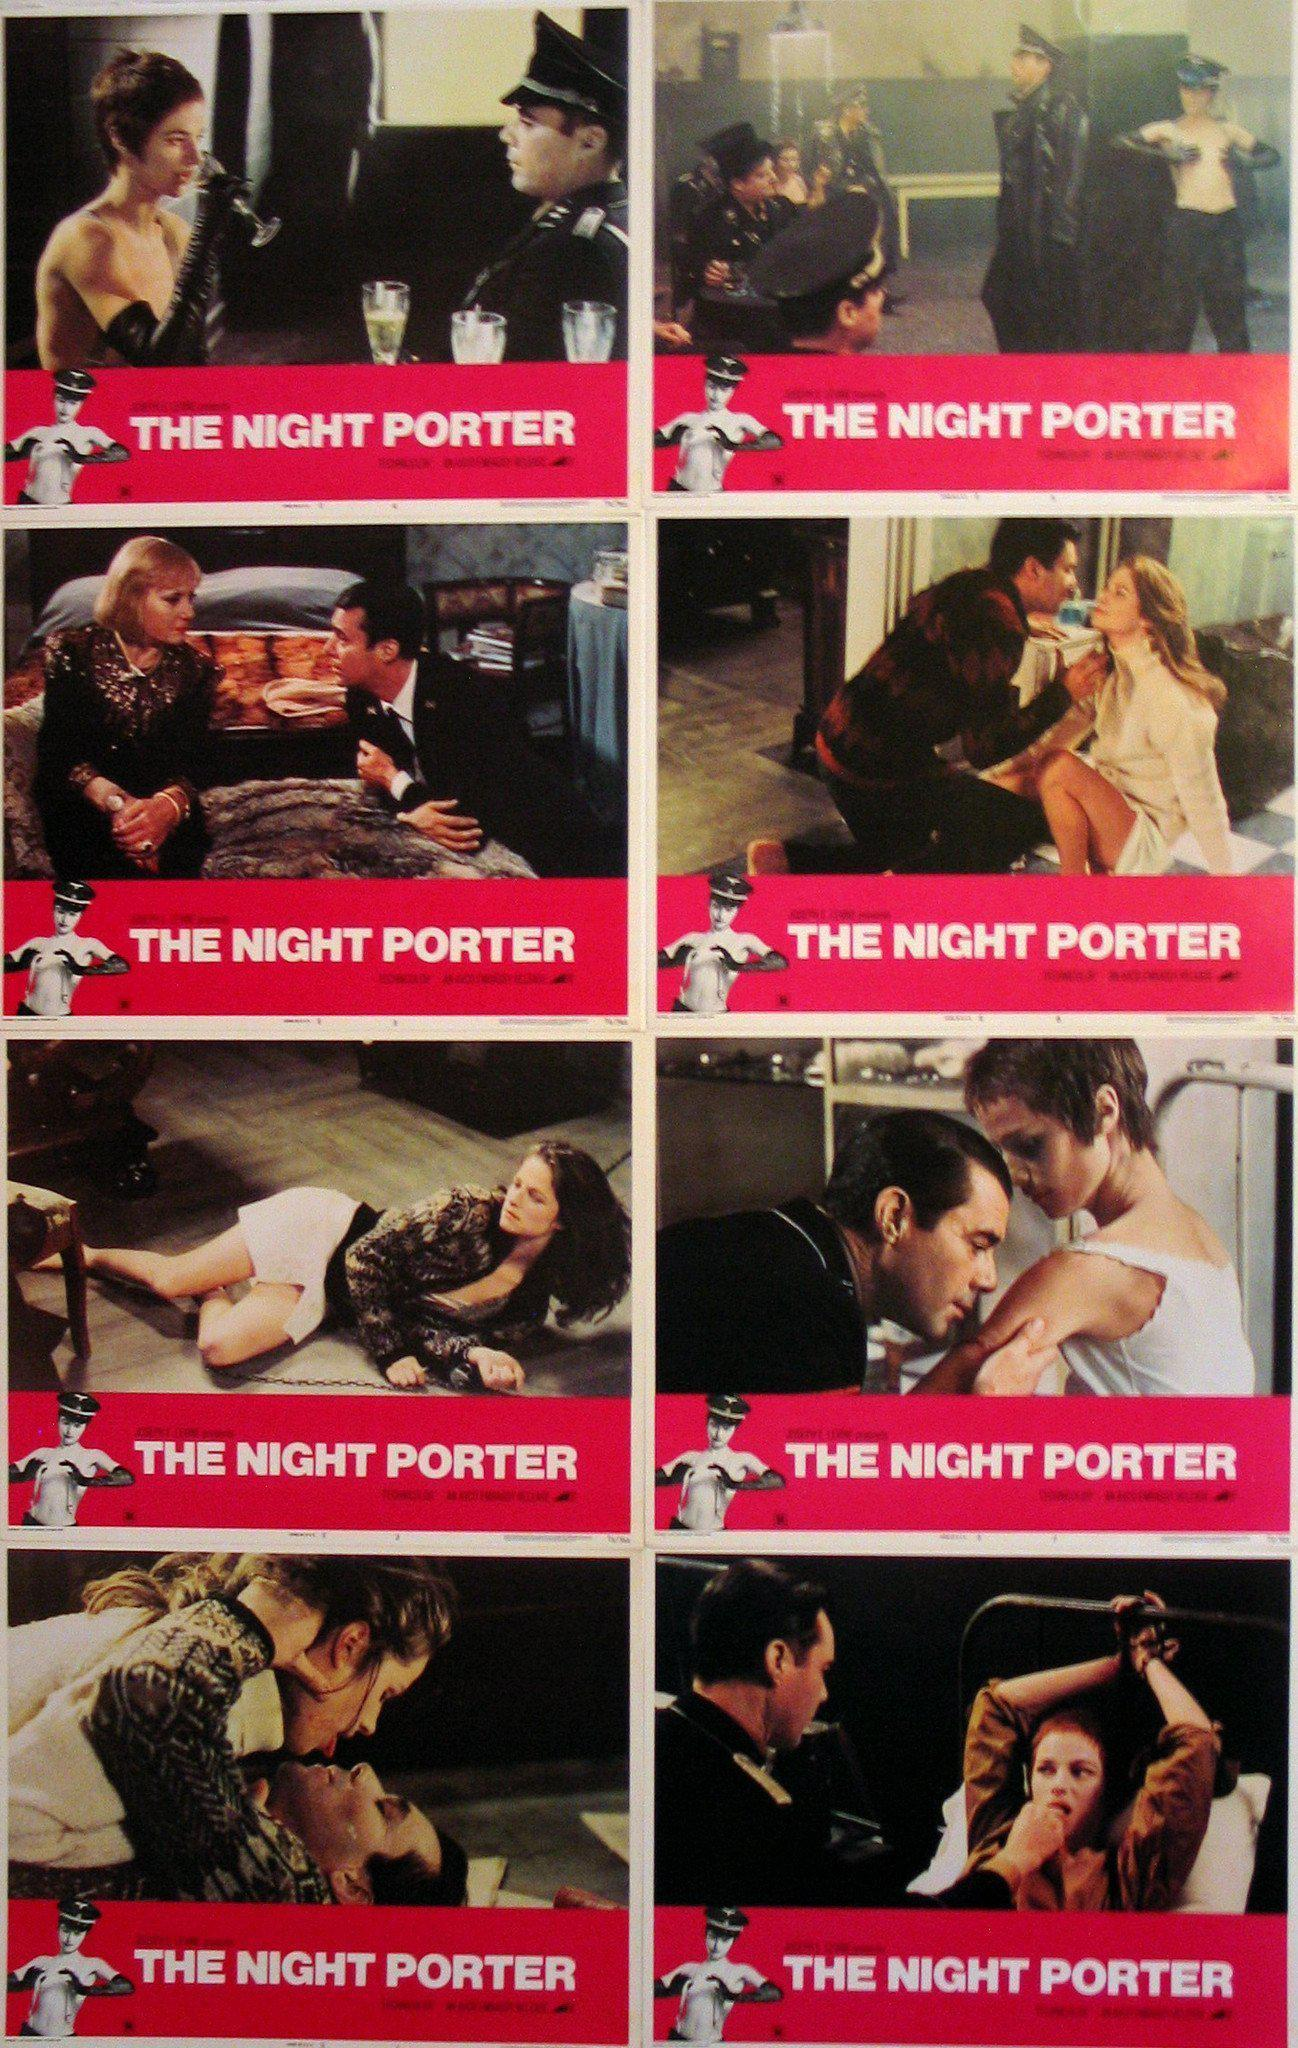 The Night Porter Lobby Card Set (8-11x14) Original Vintage Movie Poster